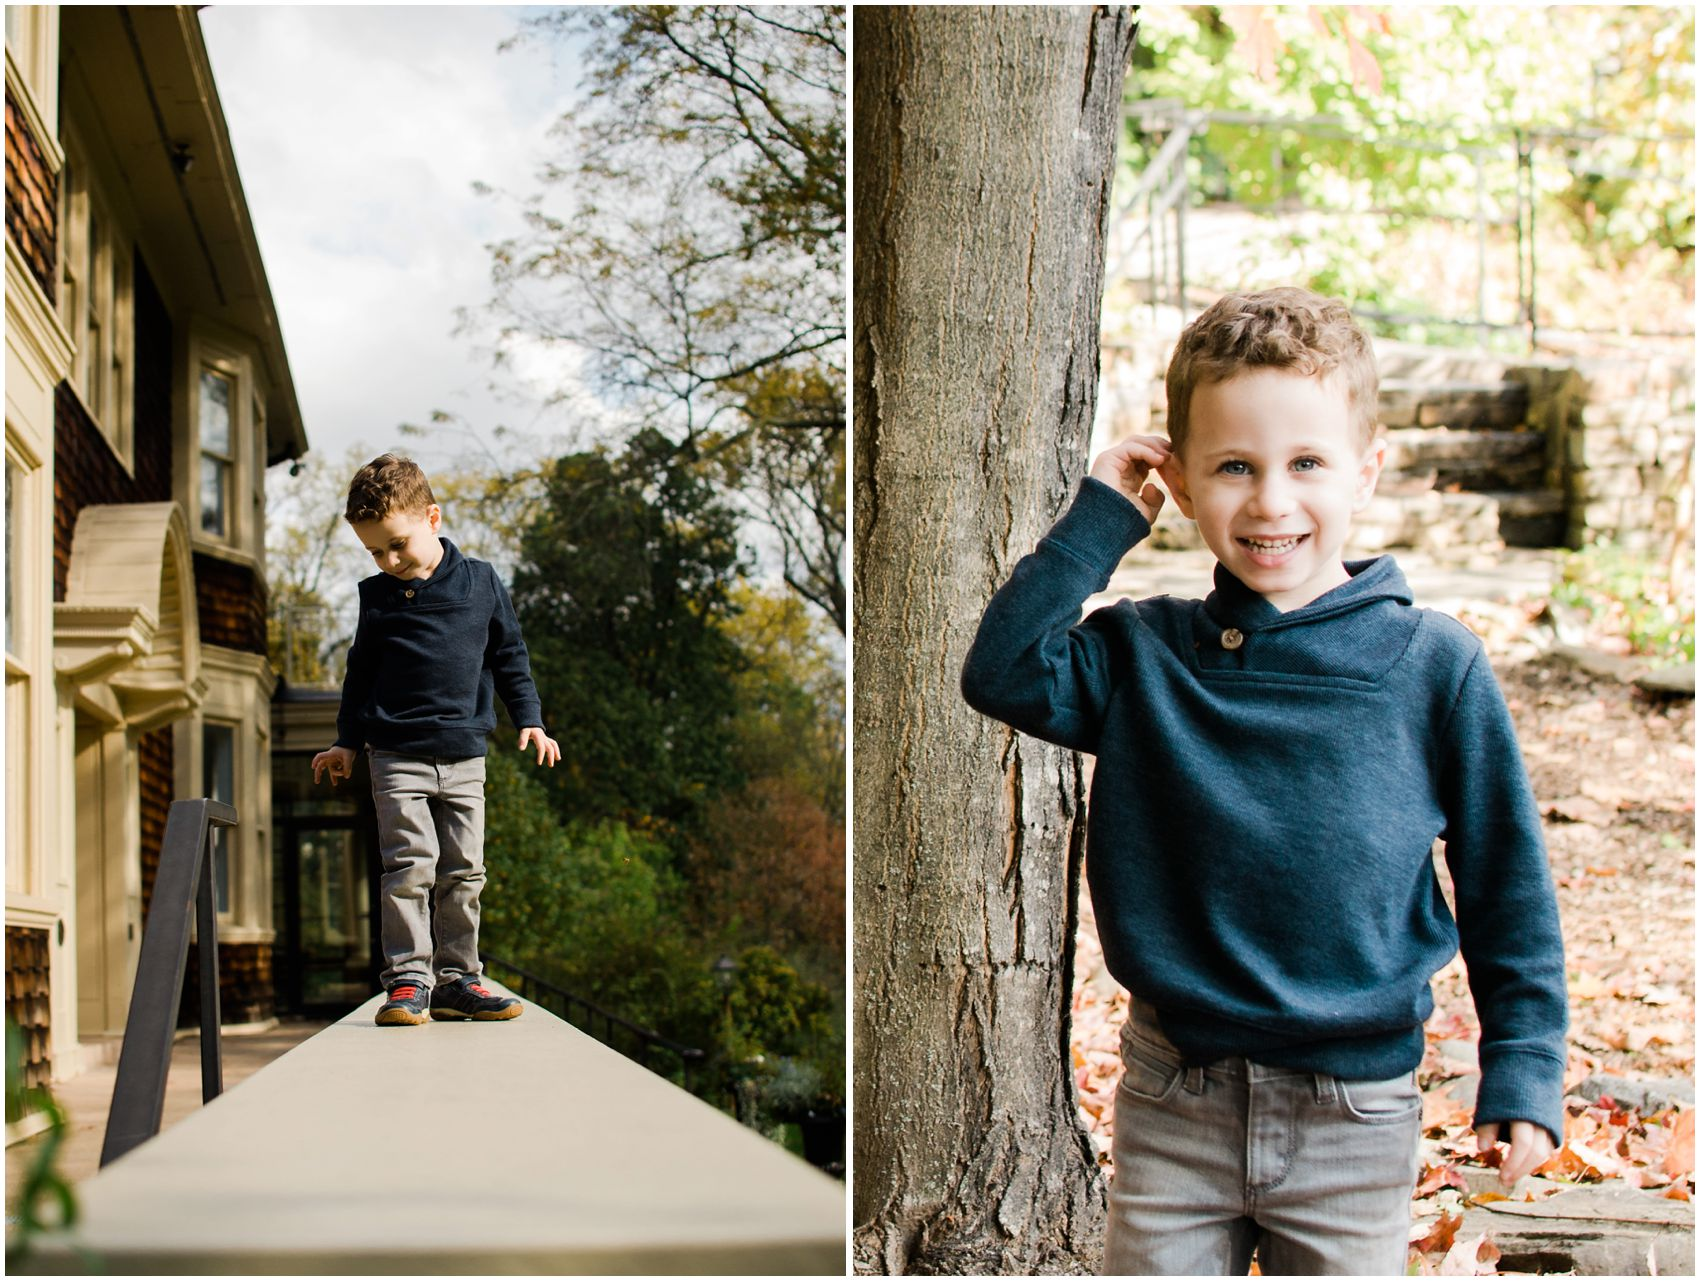 little boy wearing blue sweater and grey pants for his family portrait session